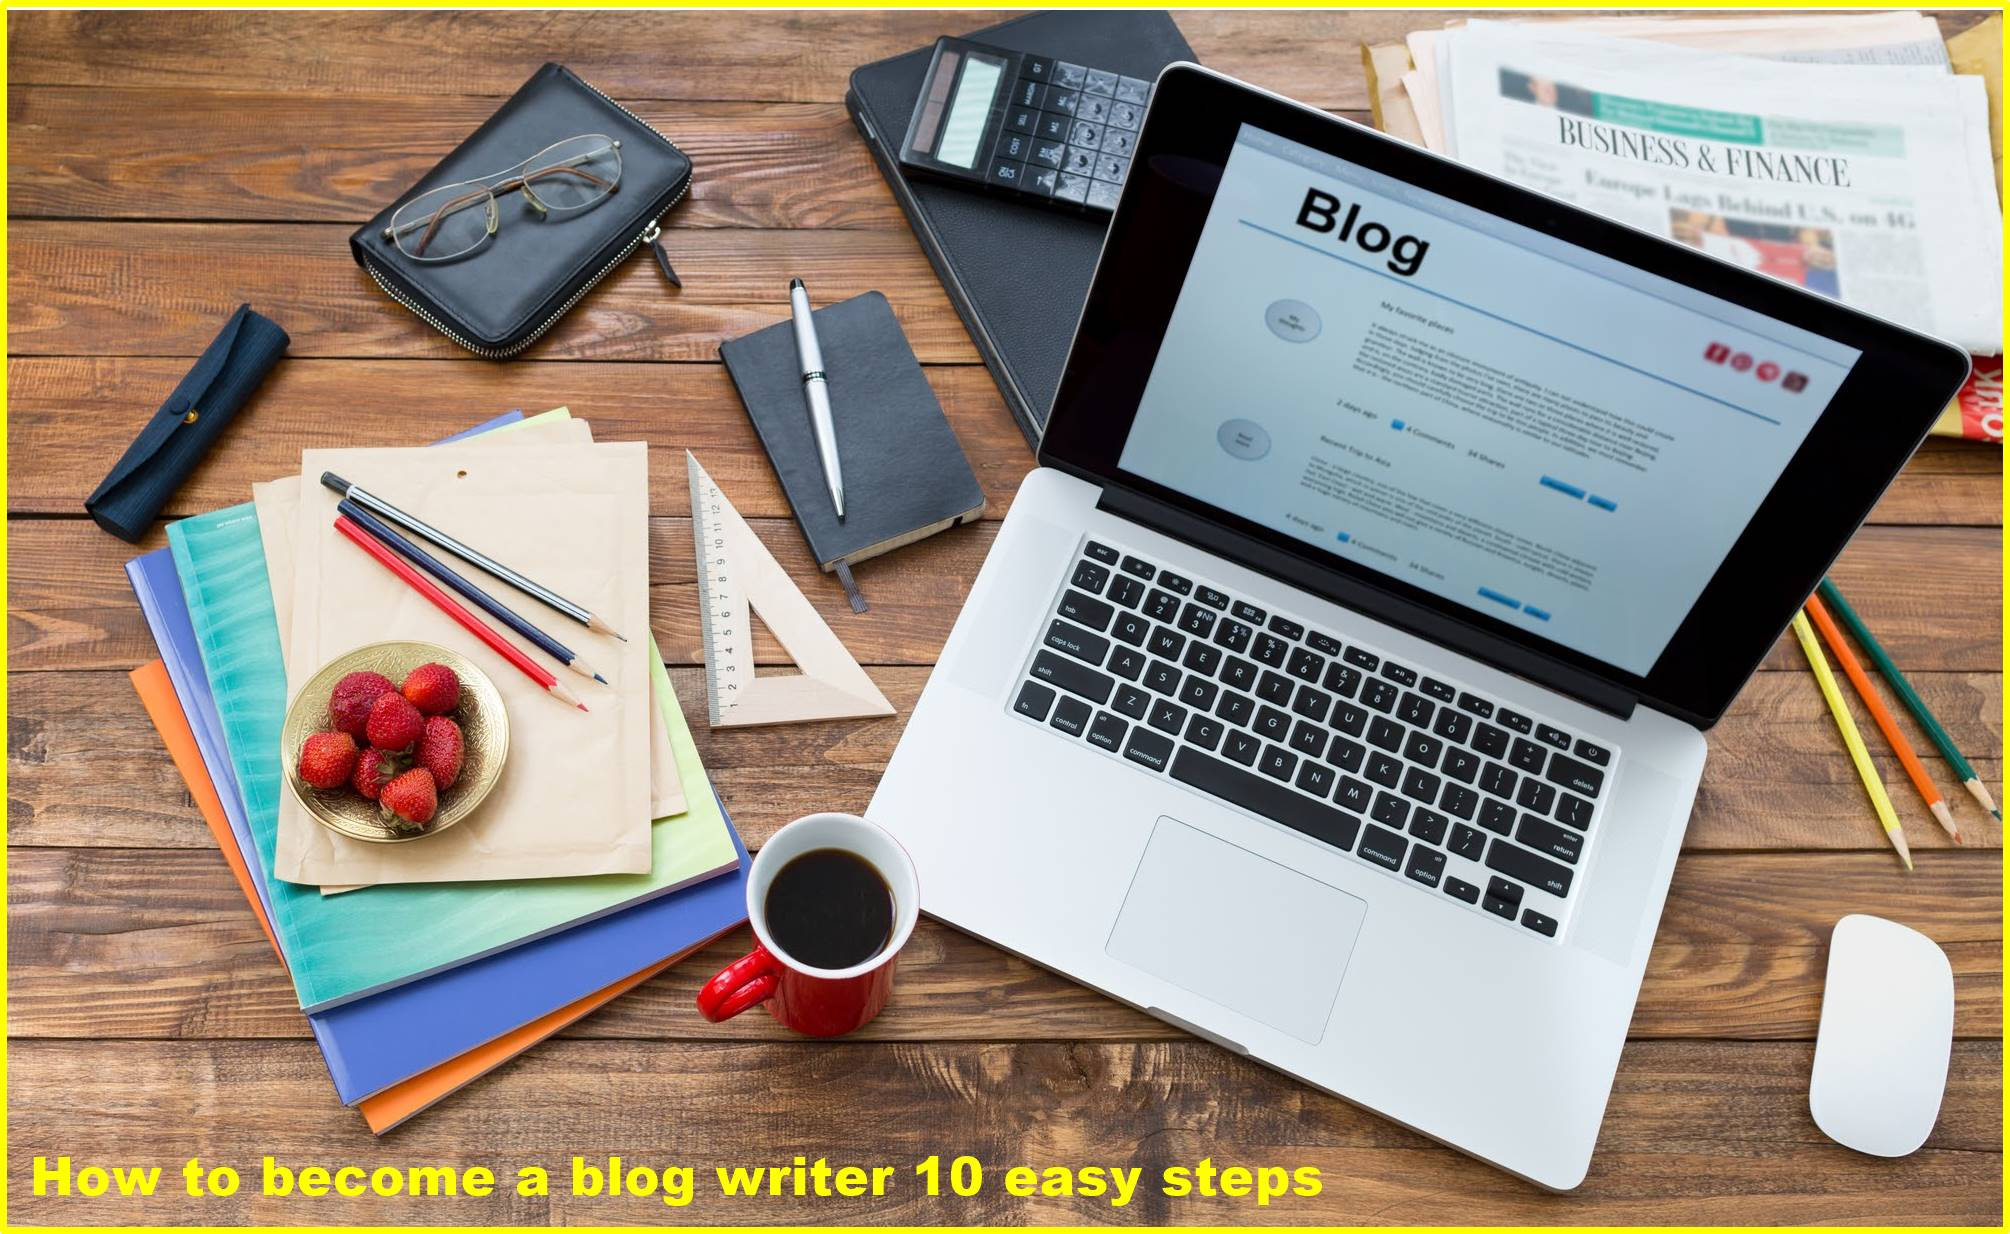 How to become a blog writer: 10 easy steps